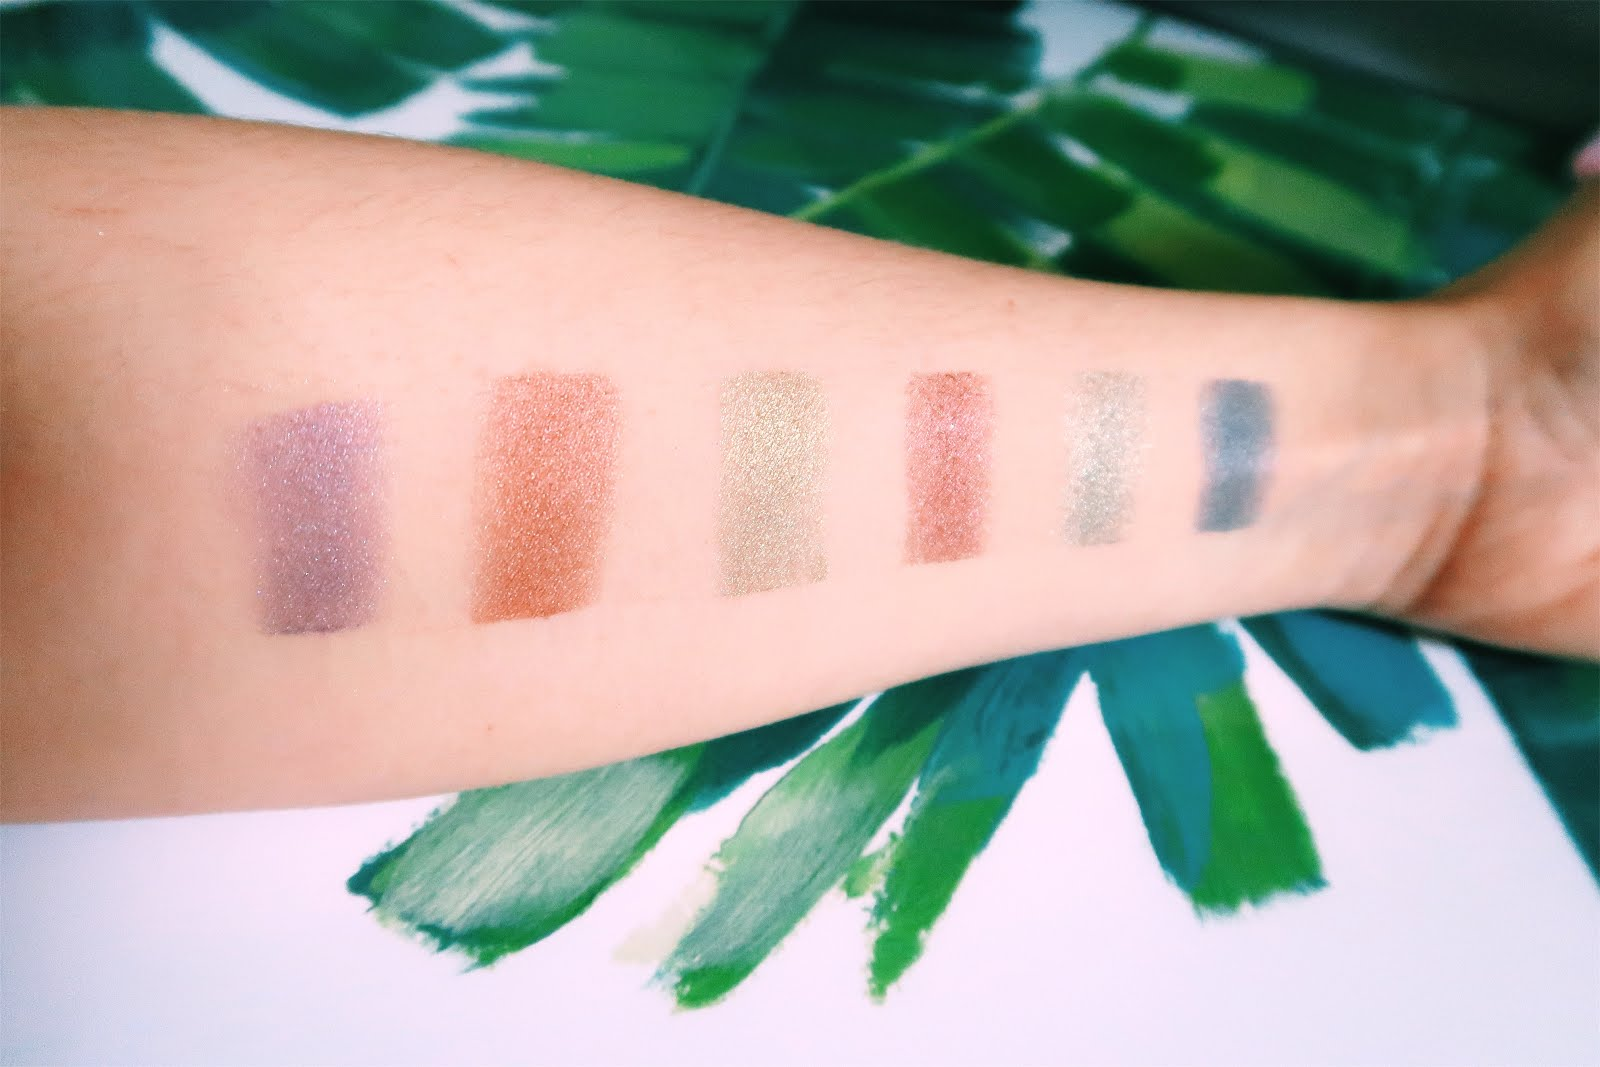 Swatches of Trends Celestial eyeshadow palette by Revolution Makeup